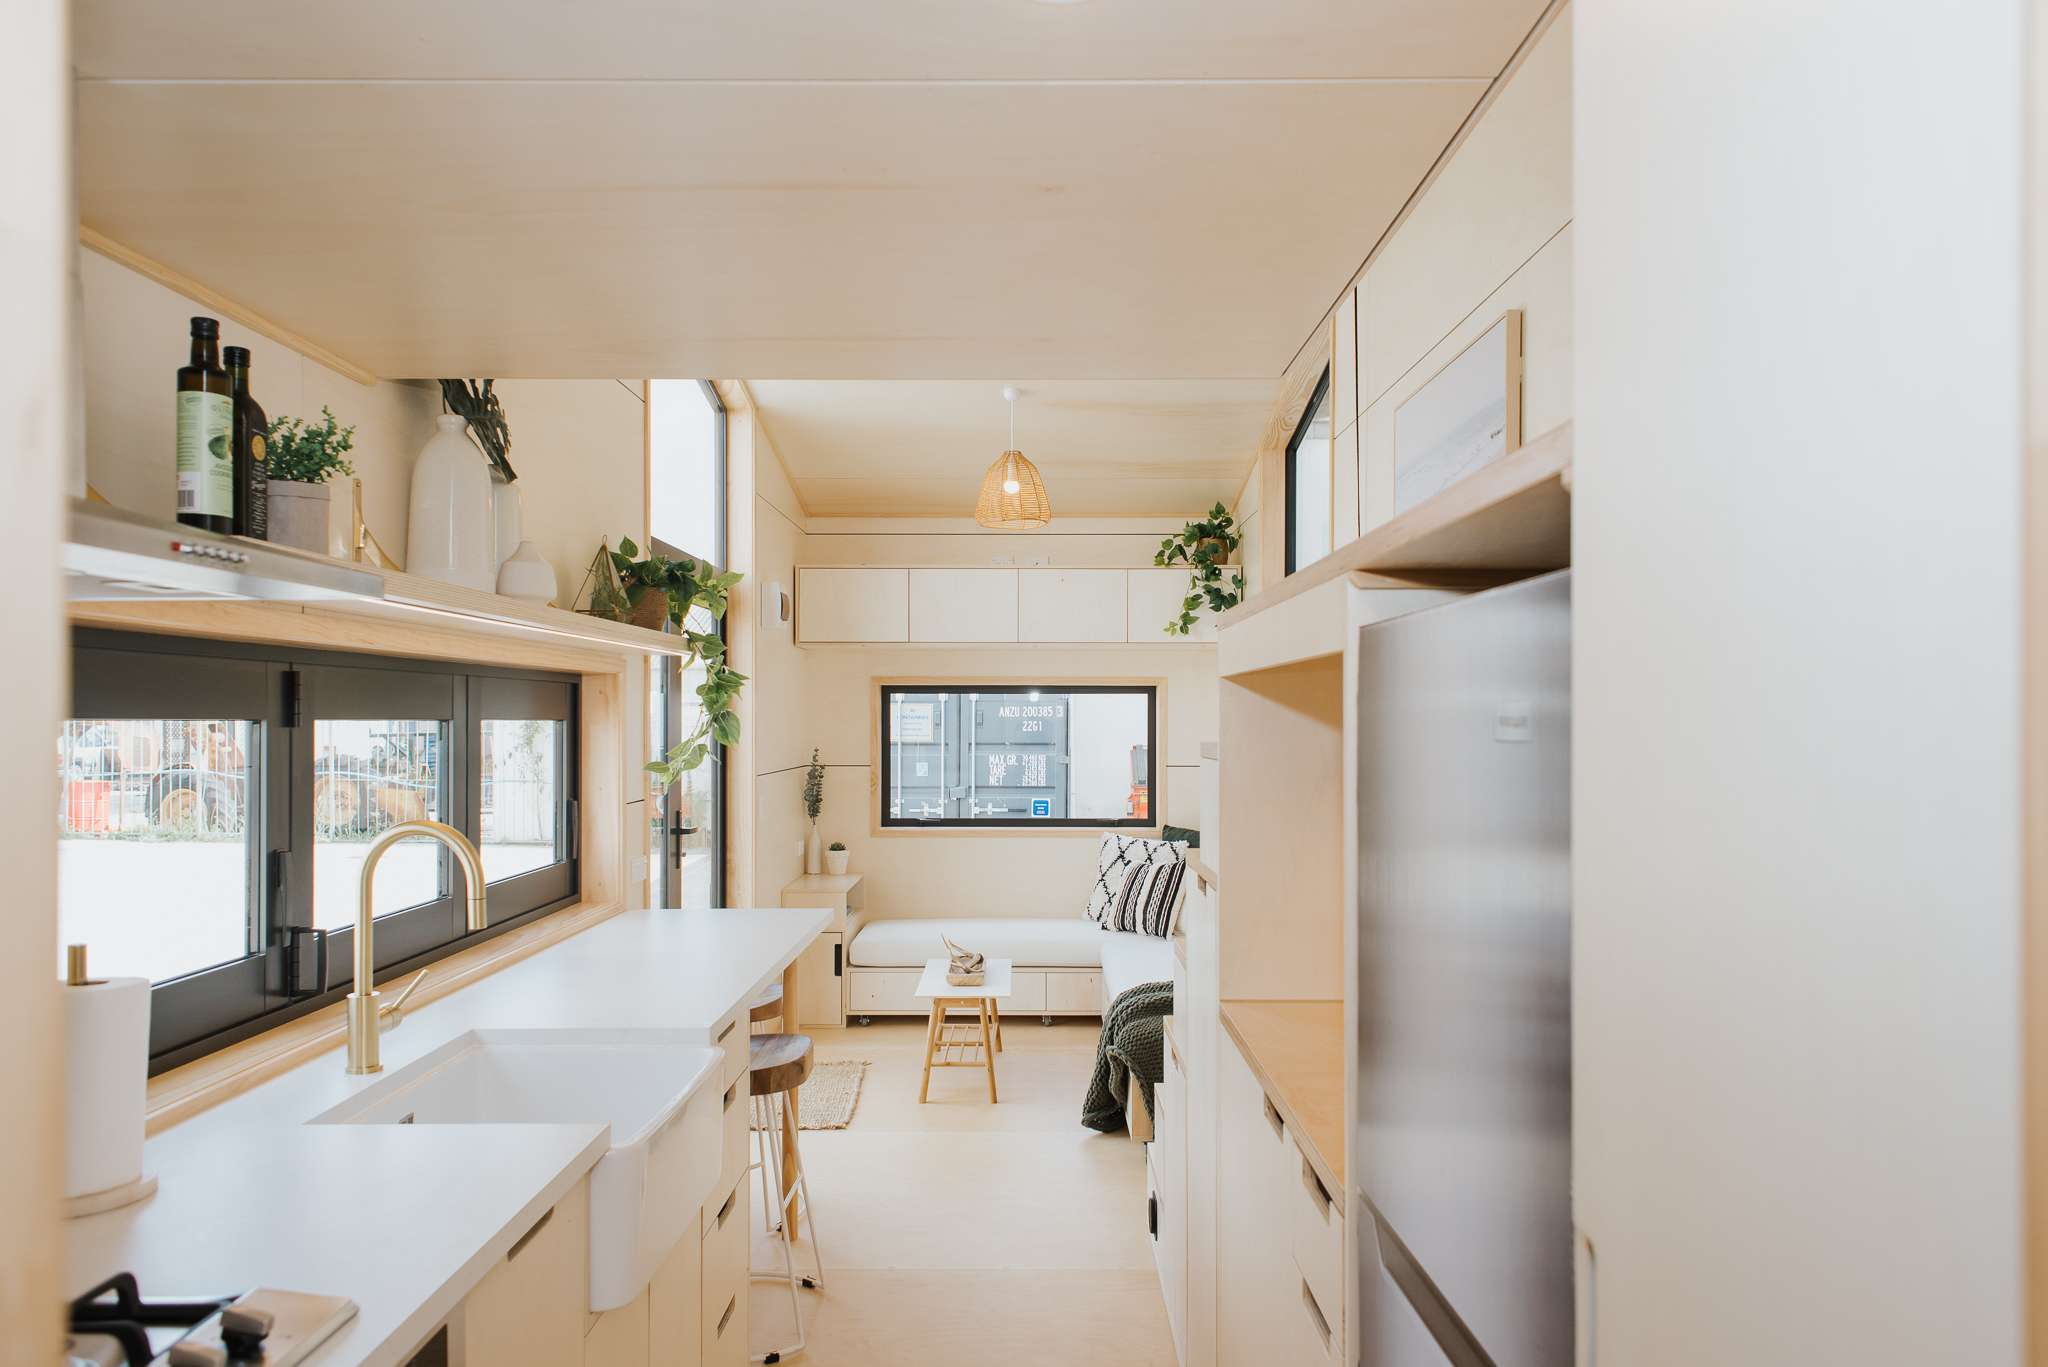 a tiny home kitchen with light wood and clean lines